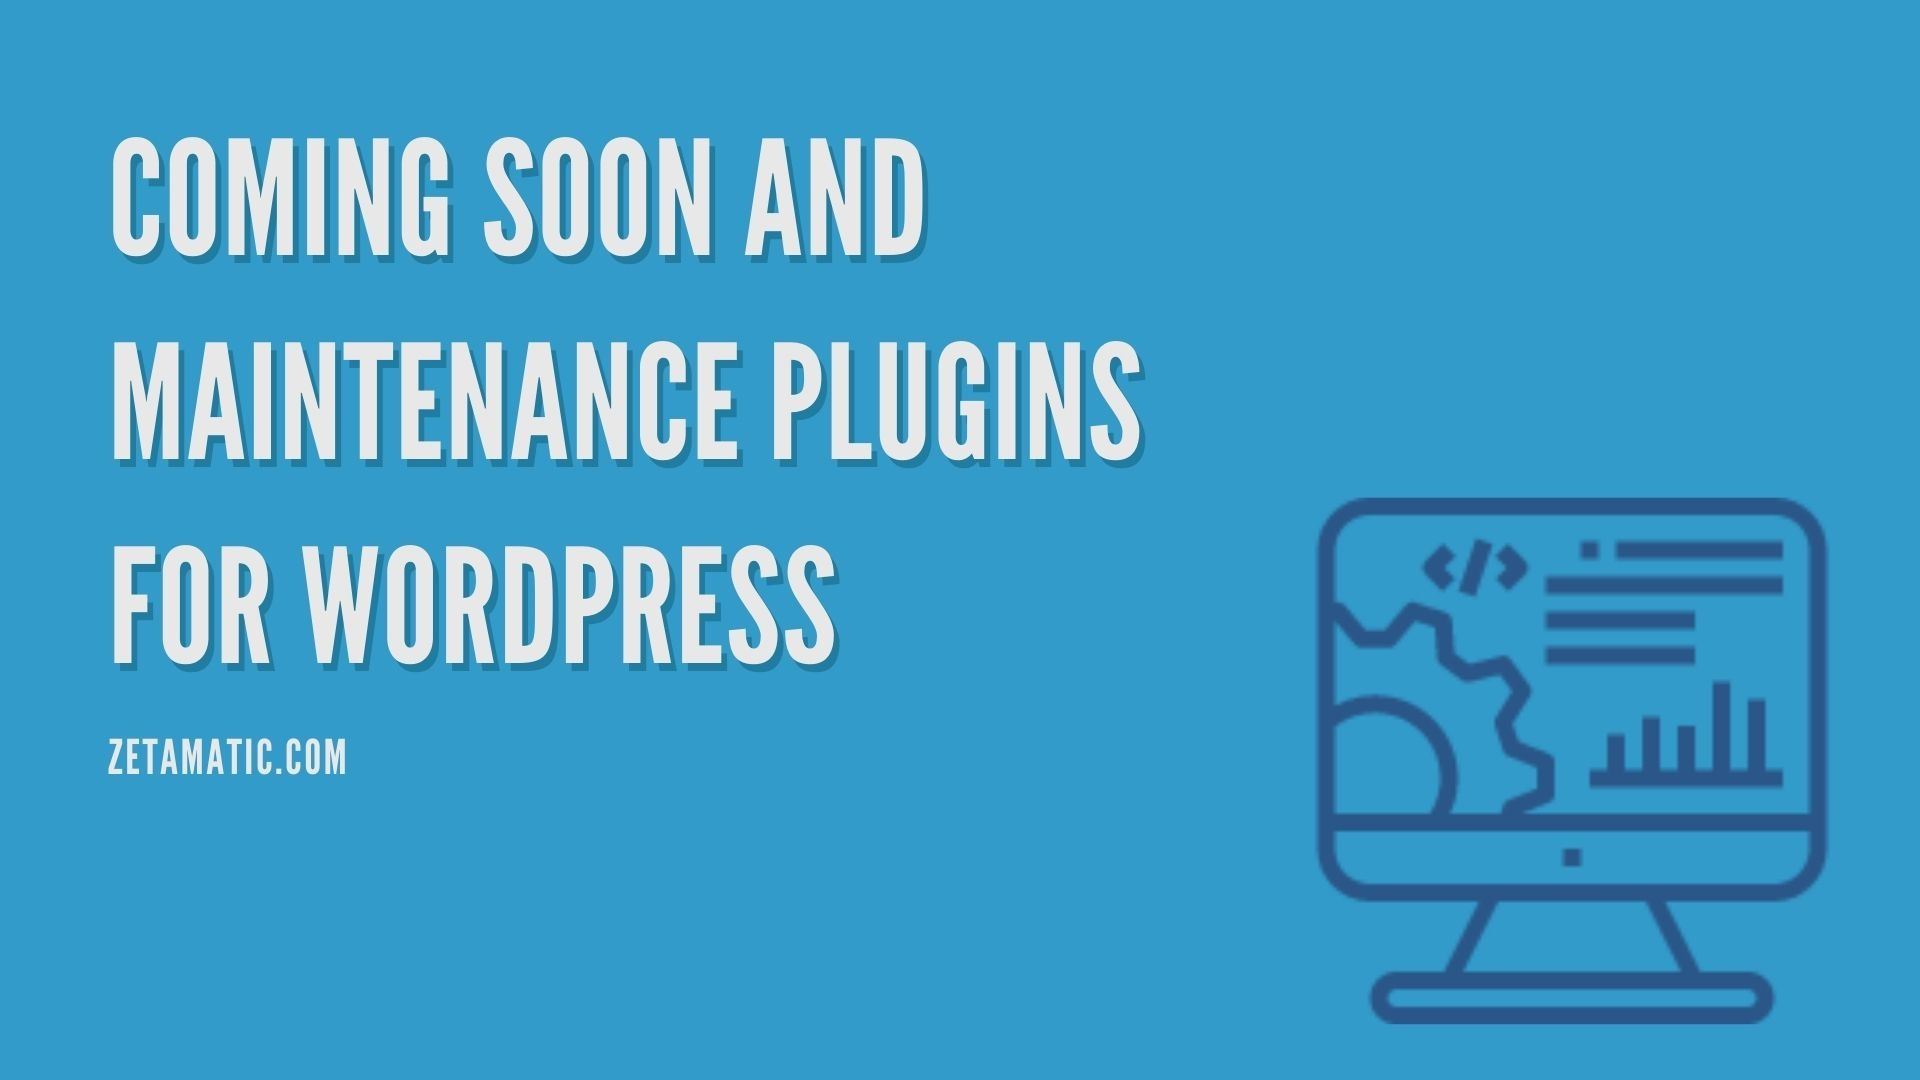 Coming Soon and Maintenance Plugins for WordPress